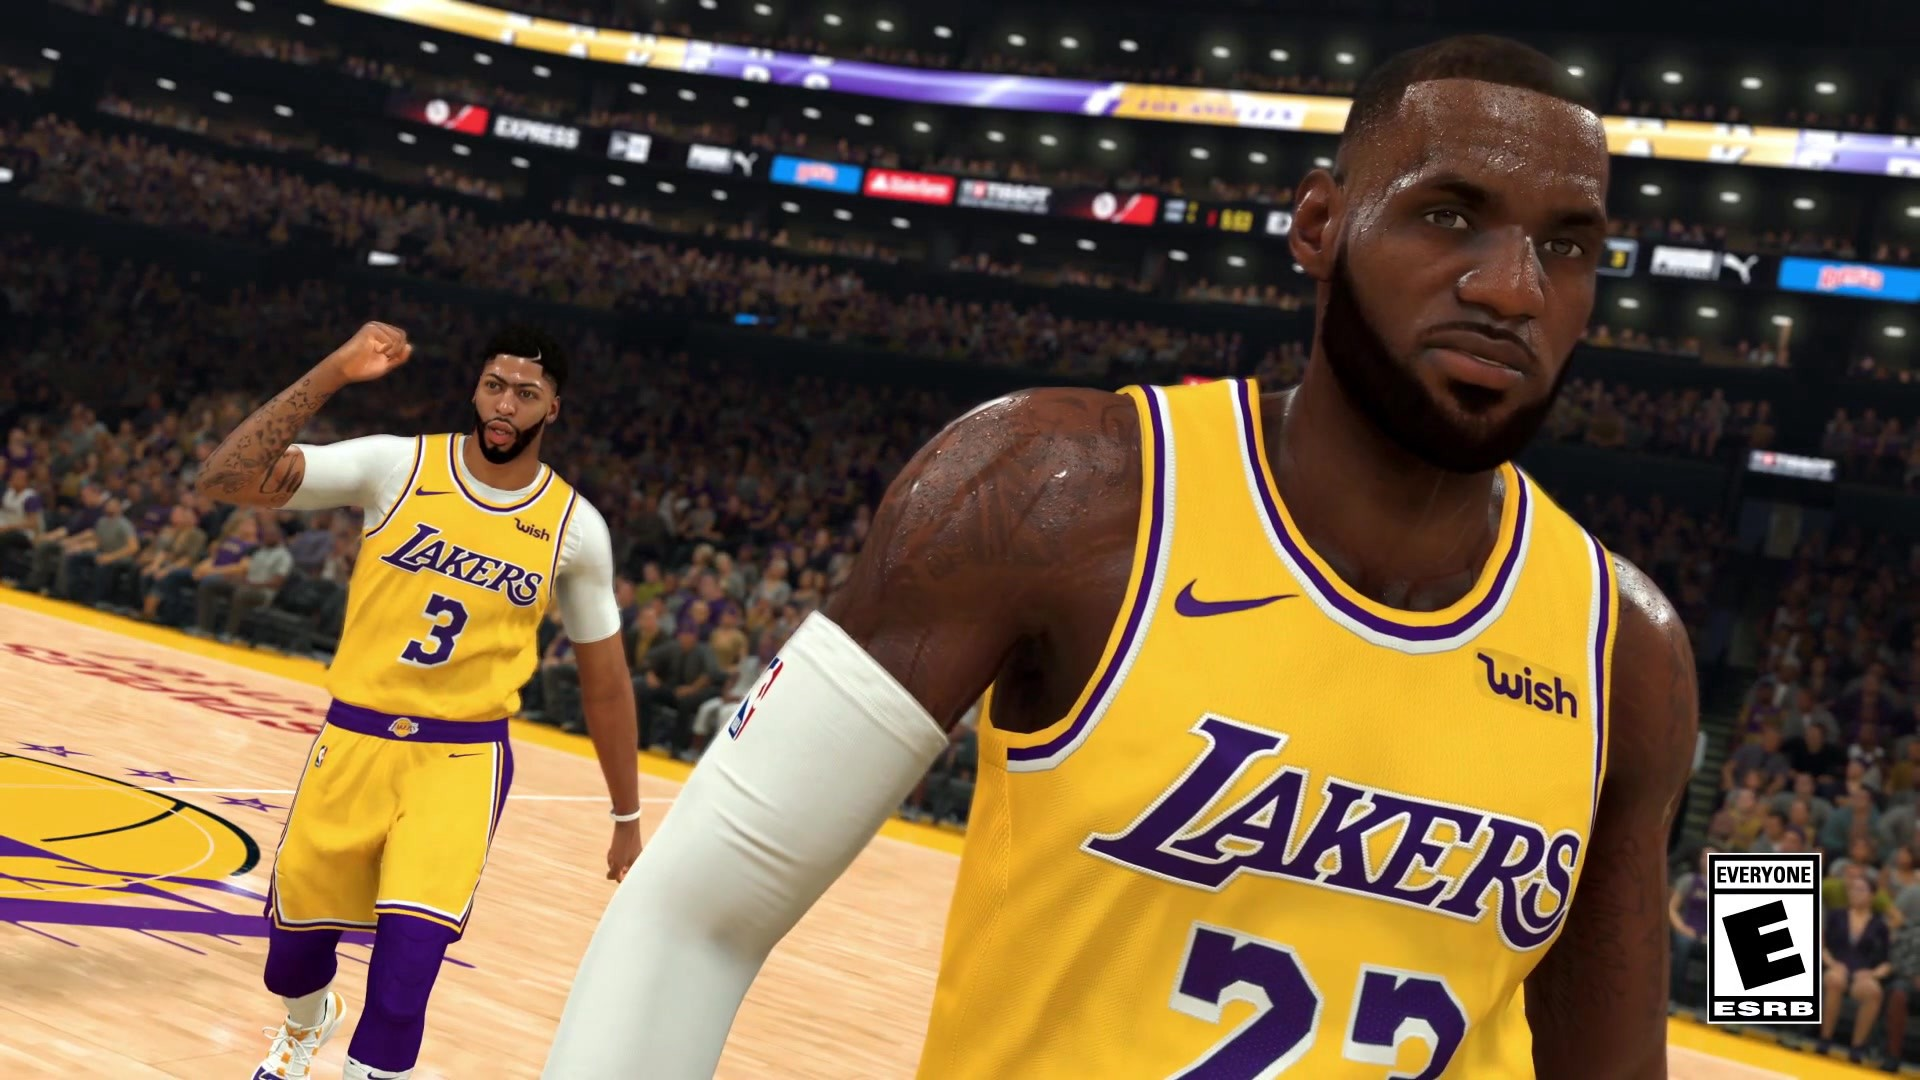 NBA 2K20 xbox one sports ps4 basketball games